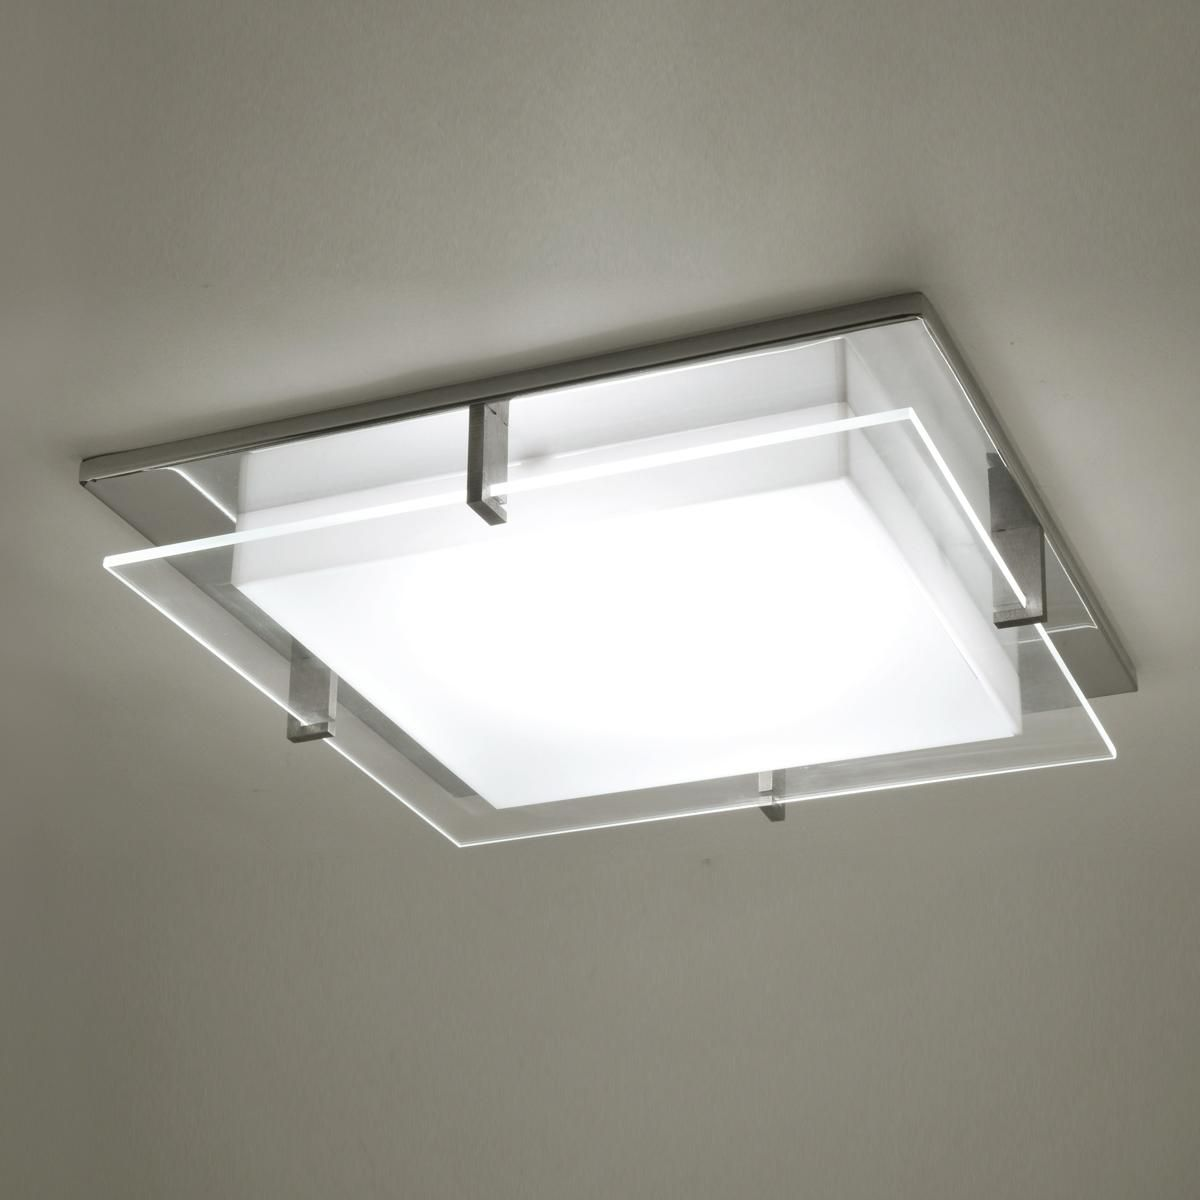 Lights For Kitchen Ceiling Modern Modern Square Ceiling Light Adapter For Recessed Light